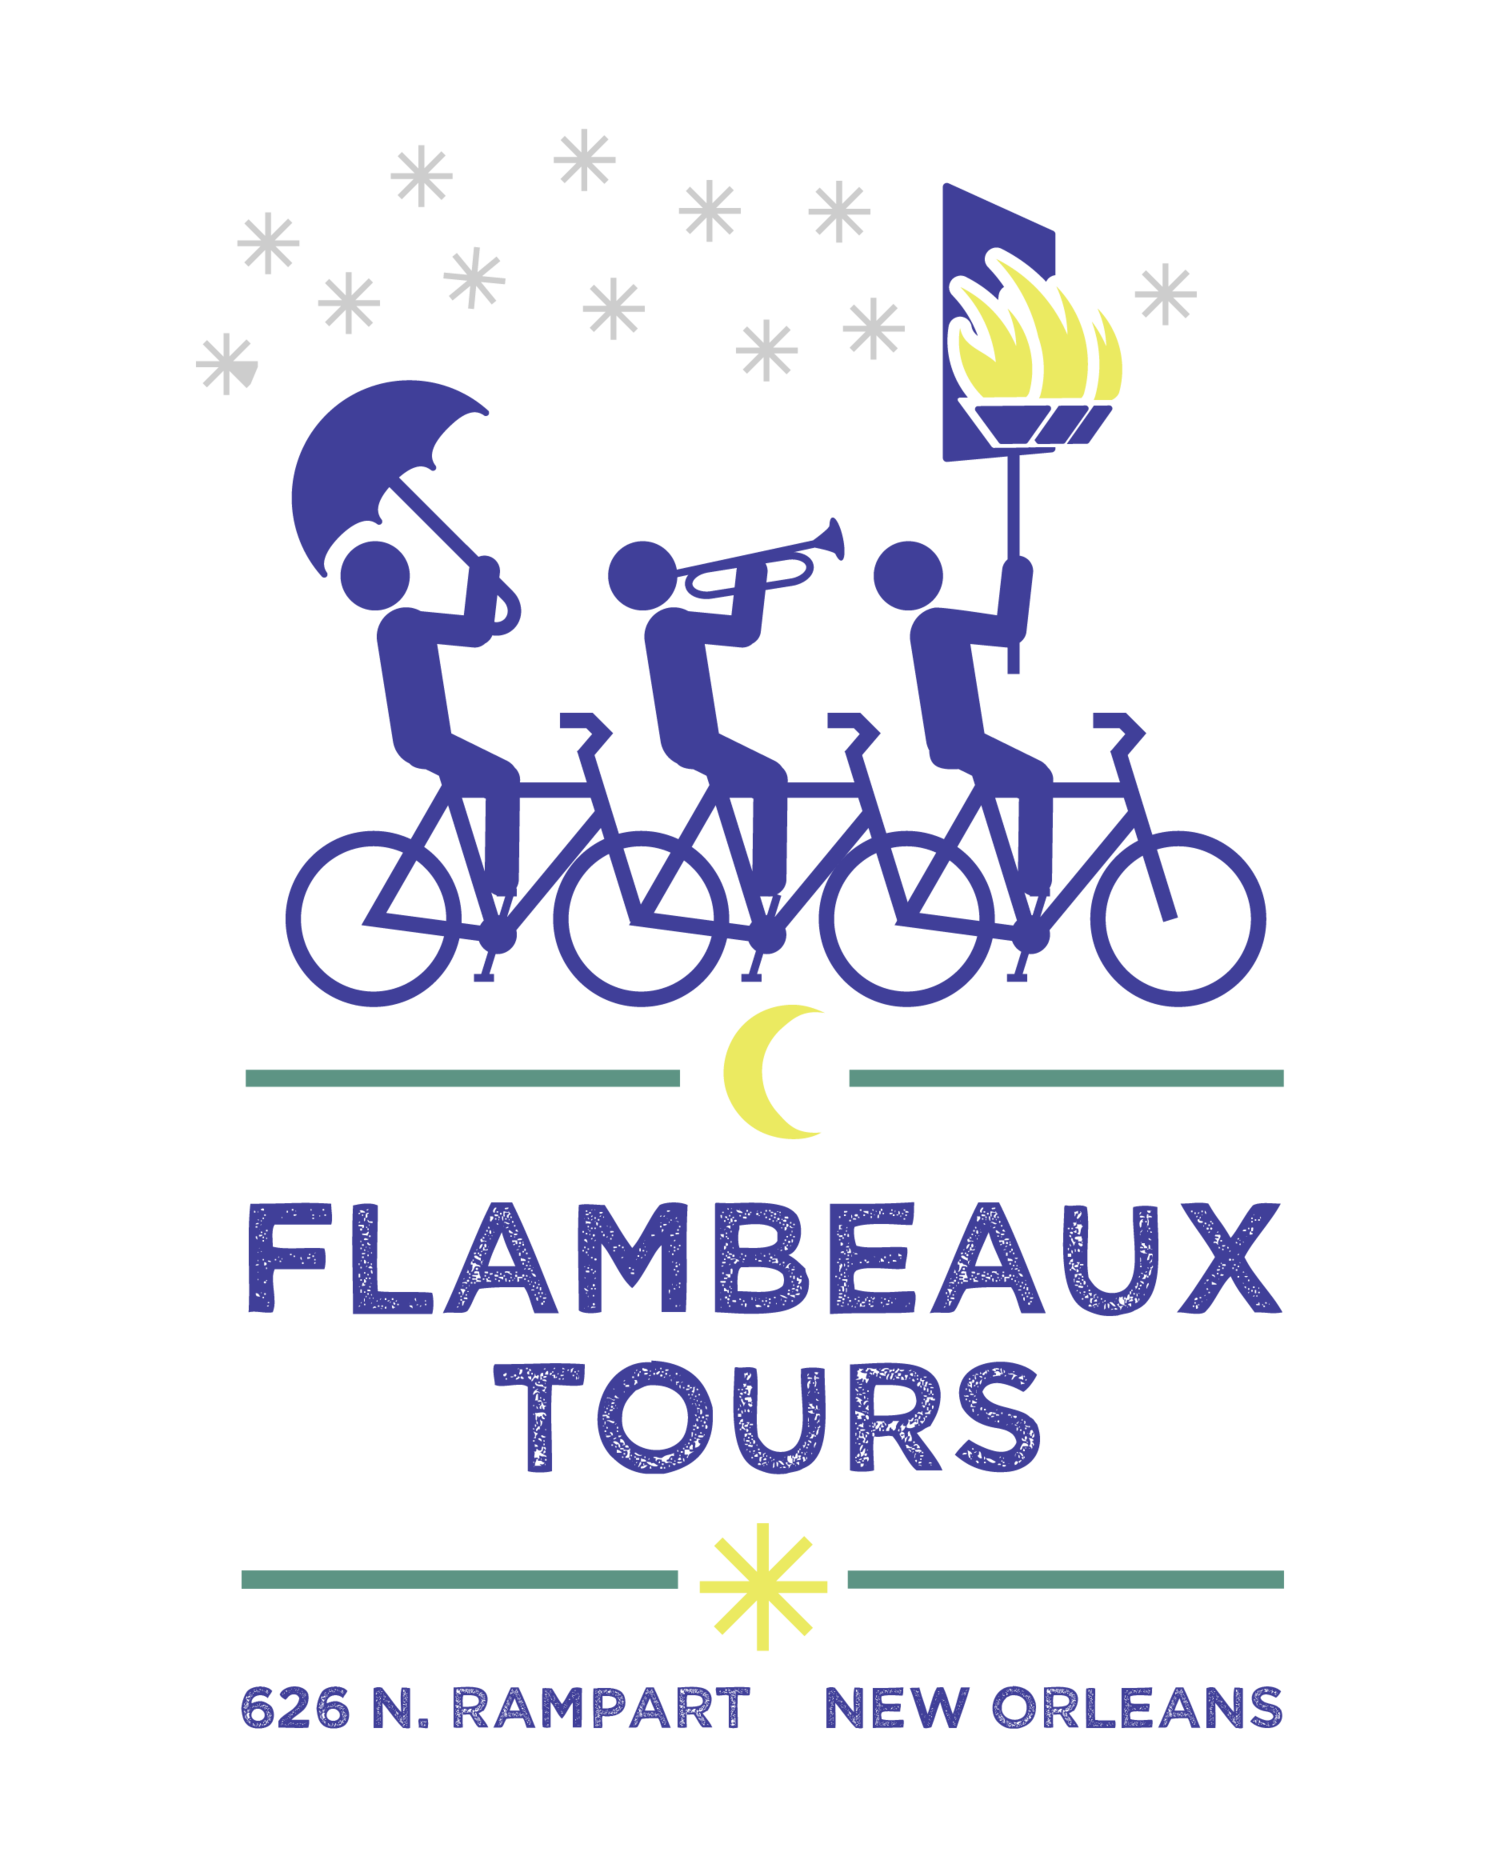 flambeaux bicycle walking tours new orleans small group bicycle walking tour company - Garden District Walking Tour